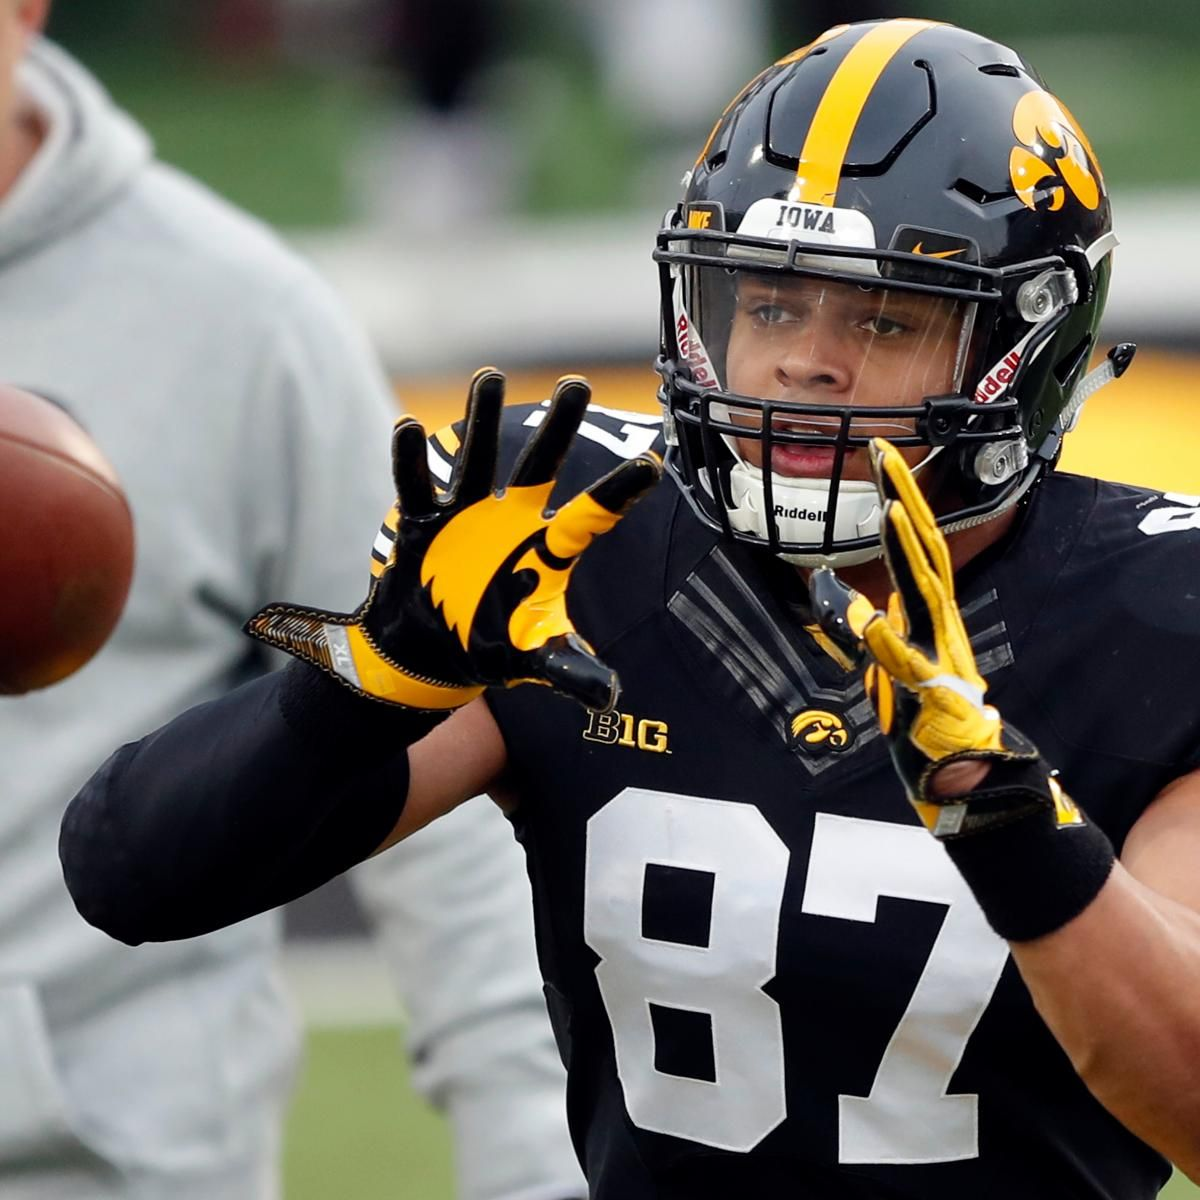 2019 NFL Mock Draft Predictions for Mid1stRound